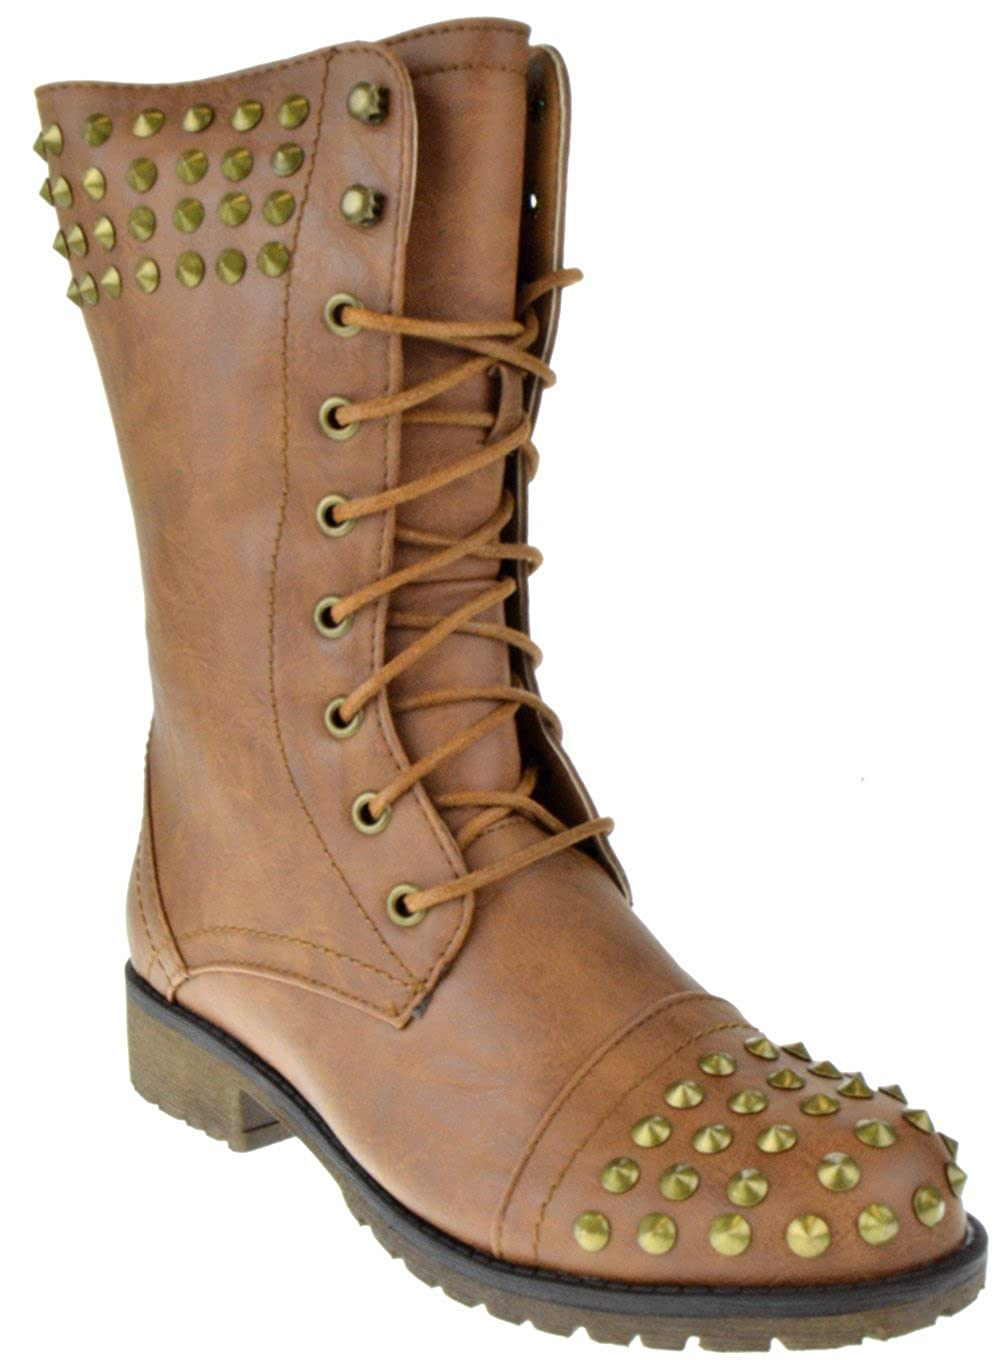 Amazon.com: Harley 14 Womens Militar Lace Up Studded Combat ...